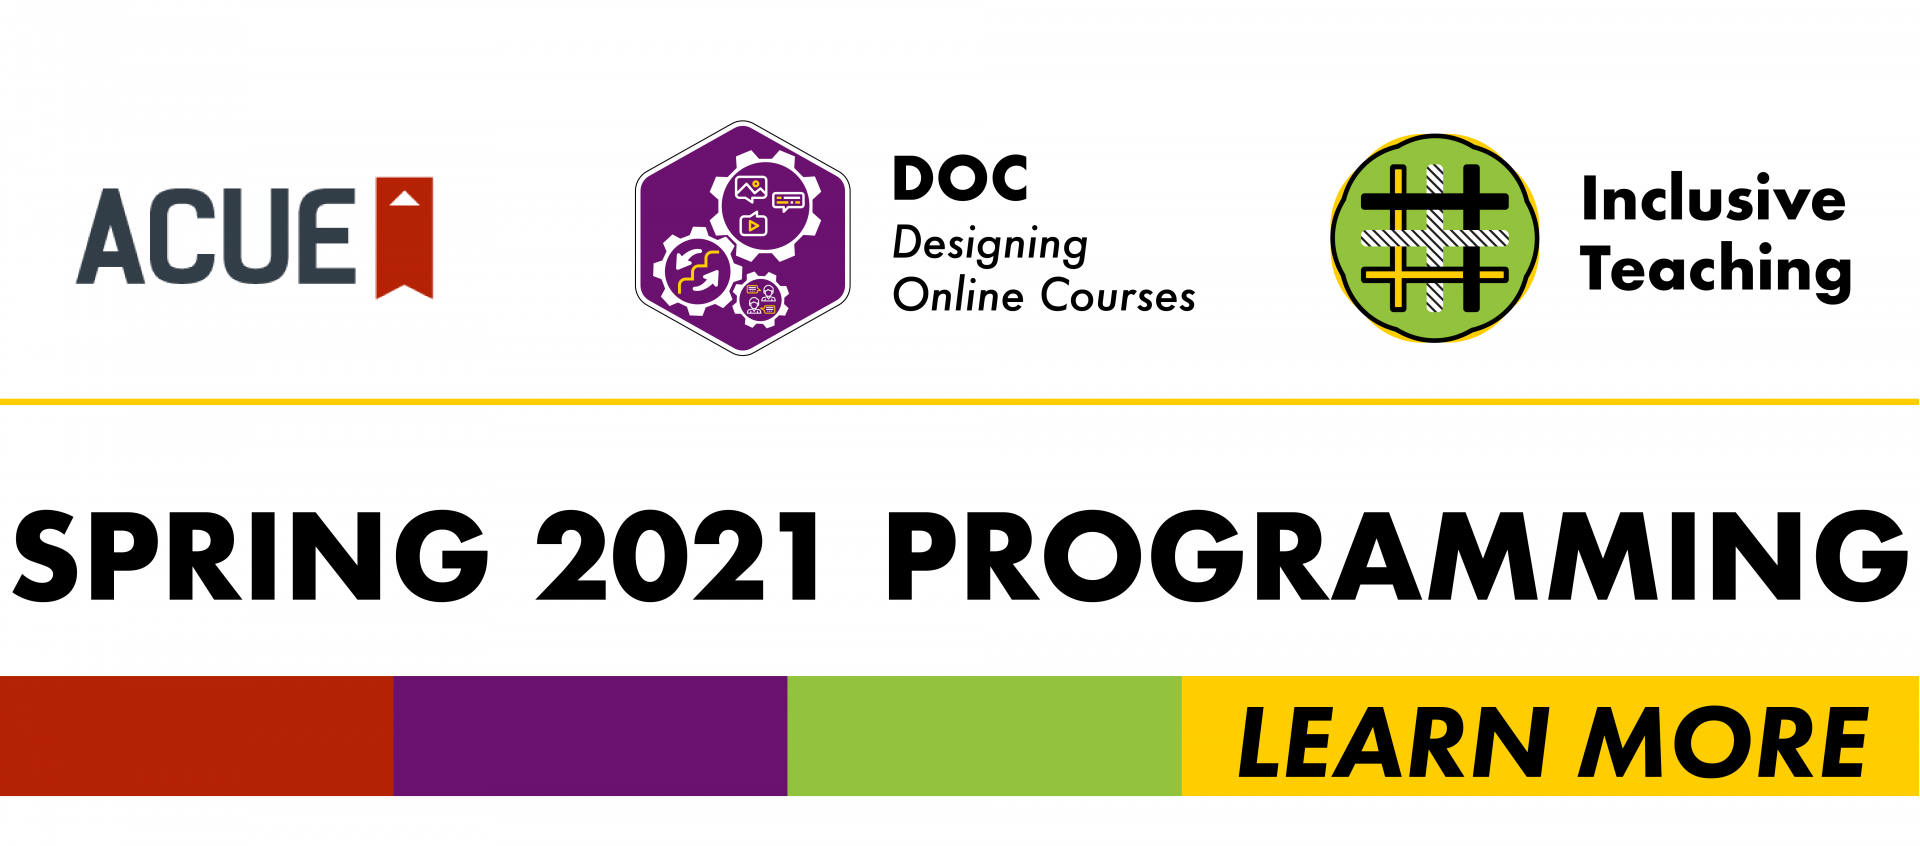 ACUE, DOC, and Inclusive Teaching. Spring 2021 Programming Learn More